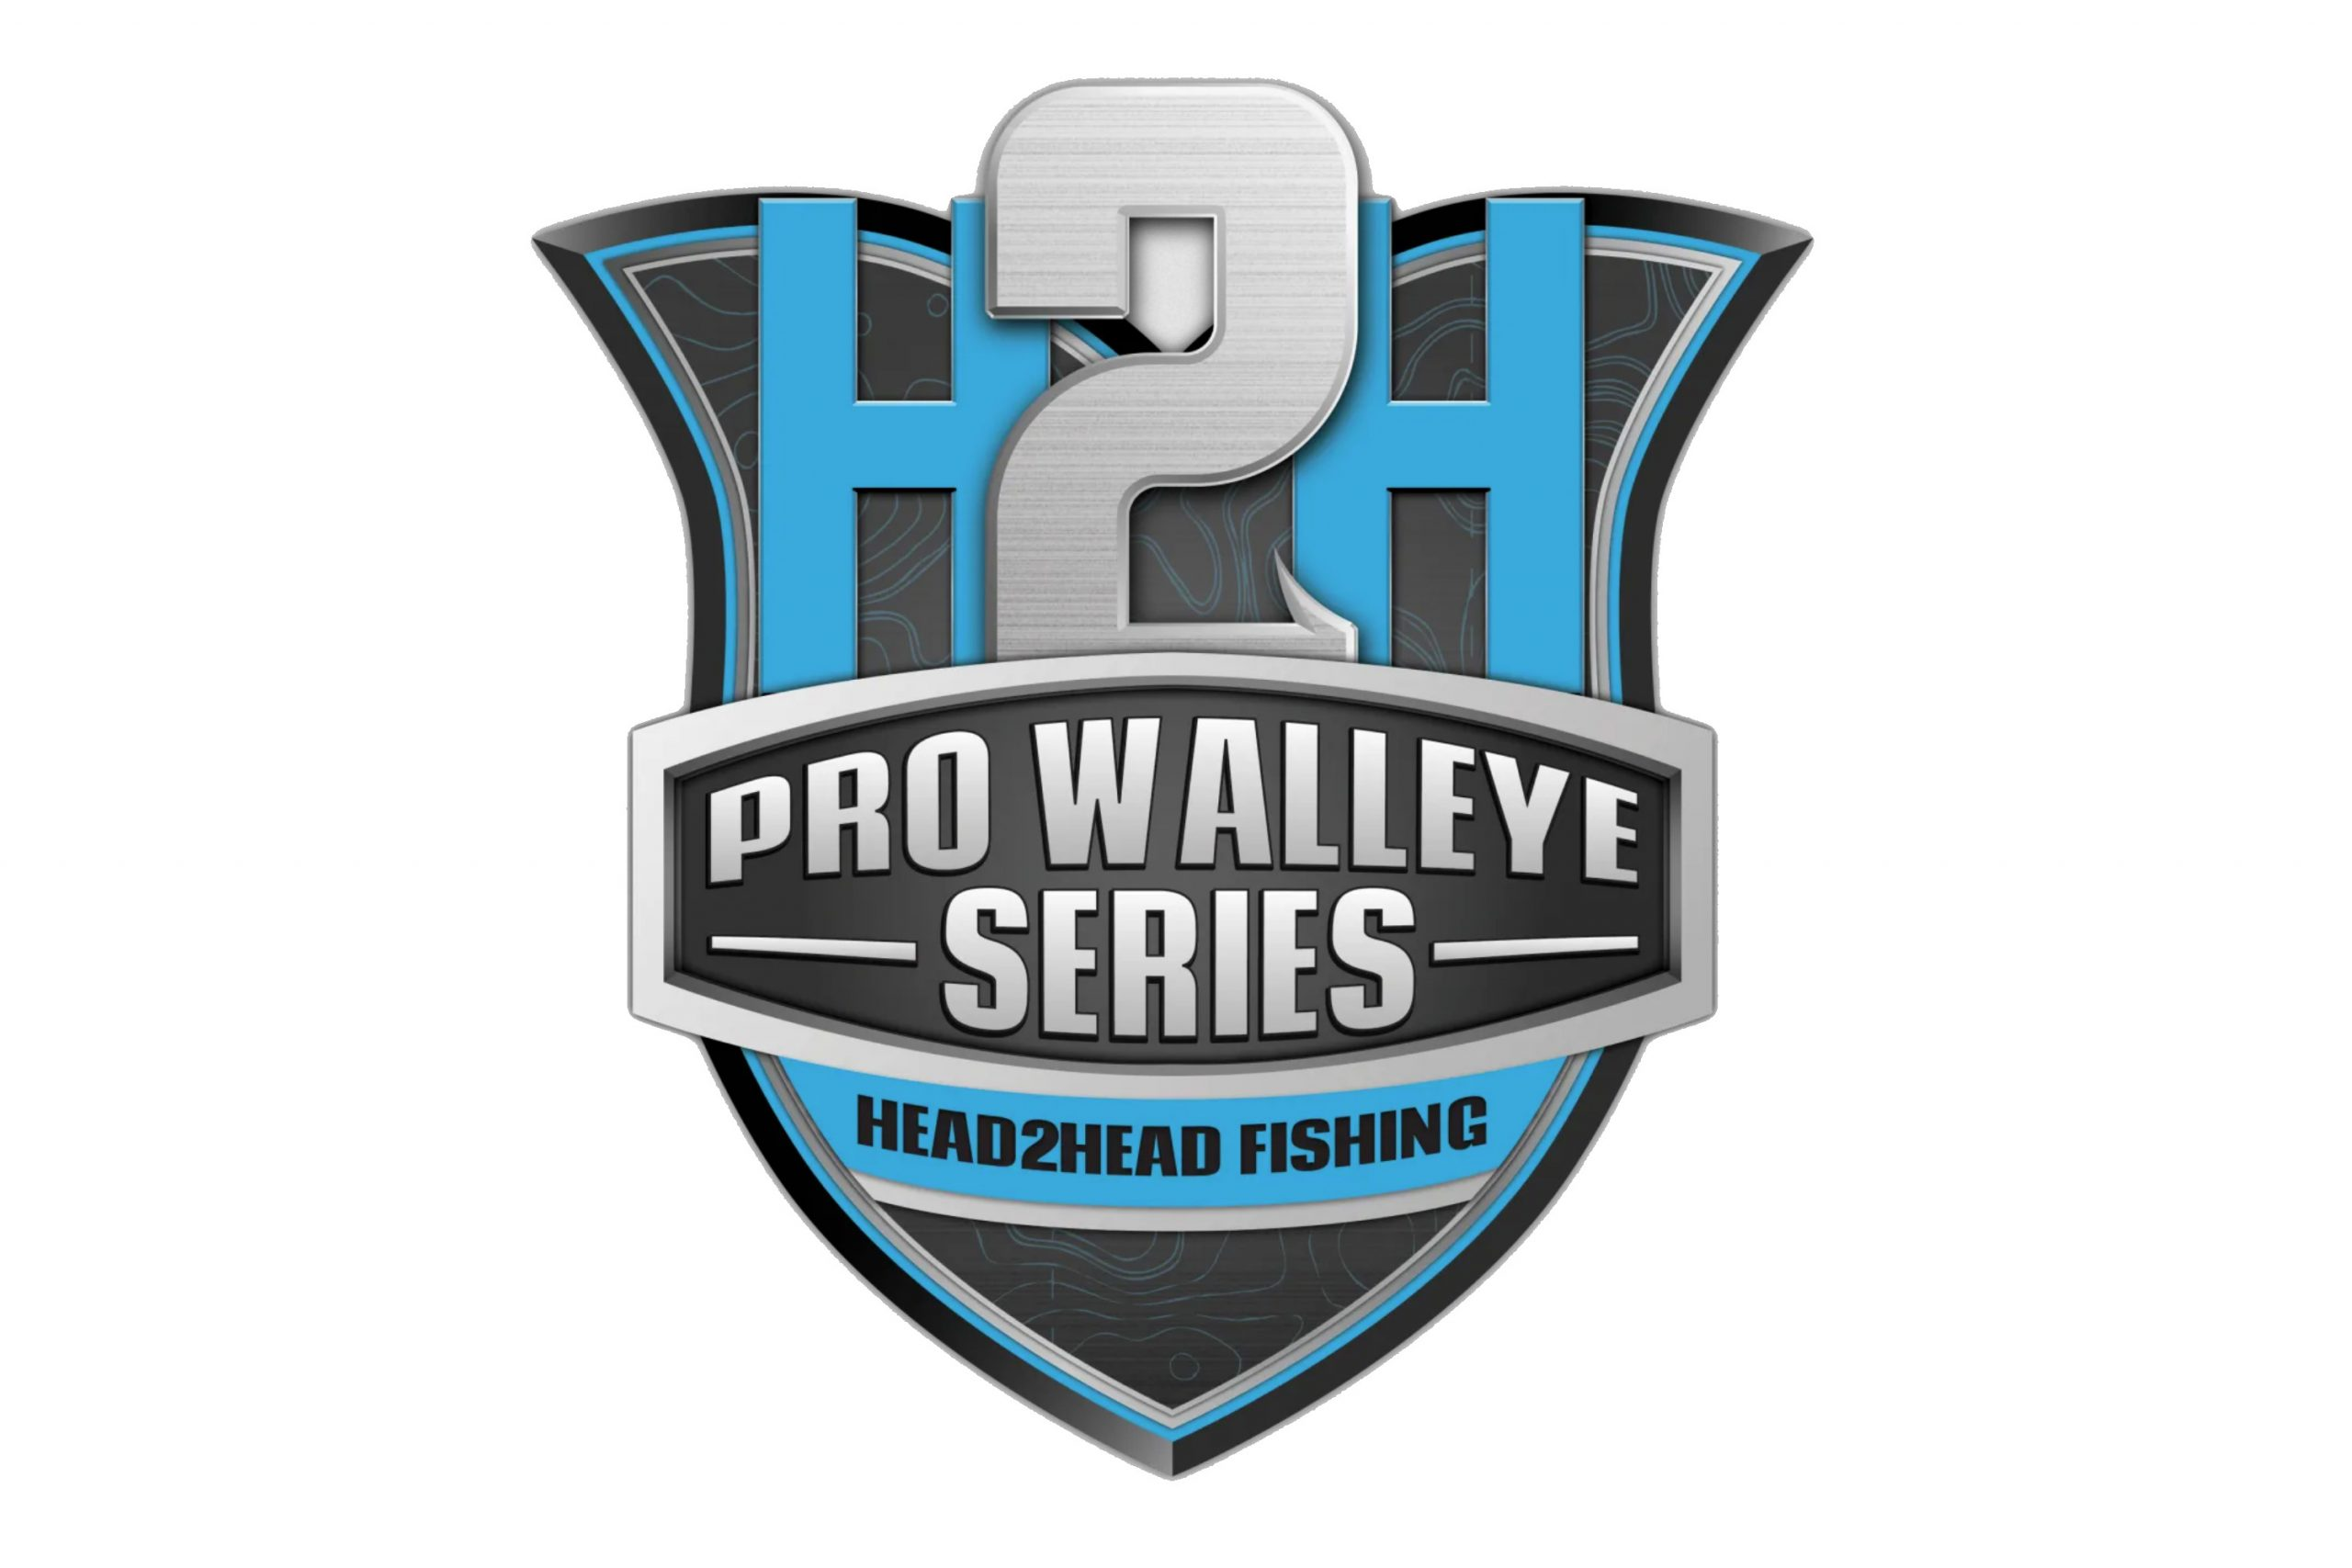 Head2Head Fishing Walleye Series